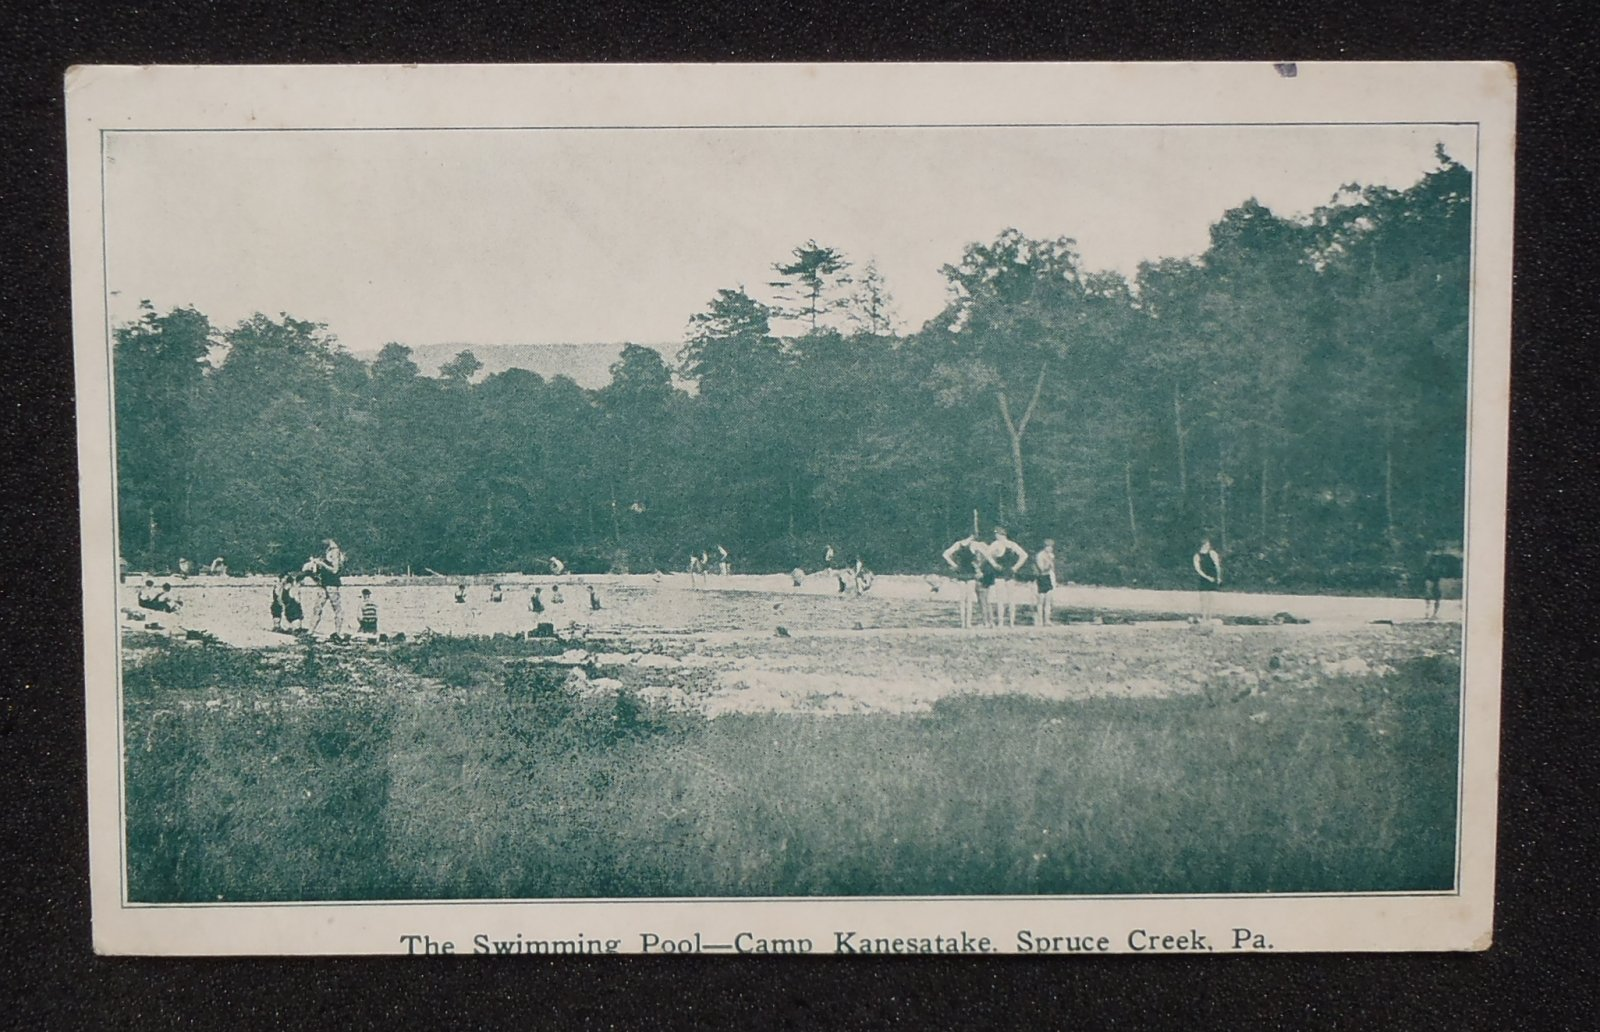 1937 the swimming pool camp kanesatake spruce creek pa huntingdon co postcard ebay Huntingdon swimming pool timetable